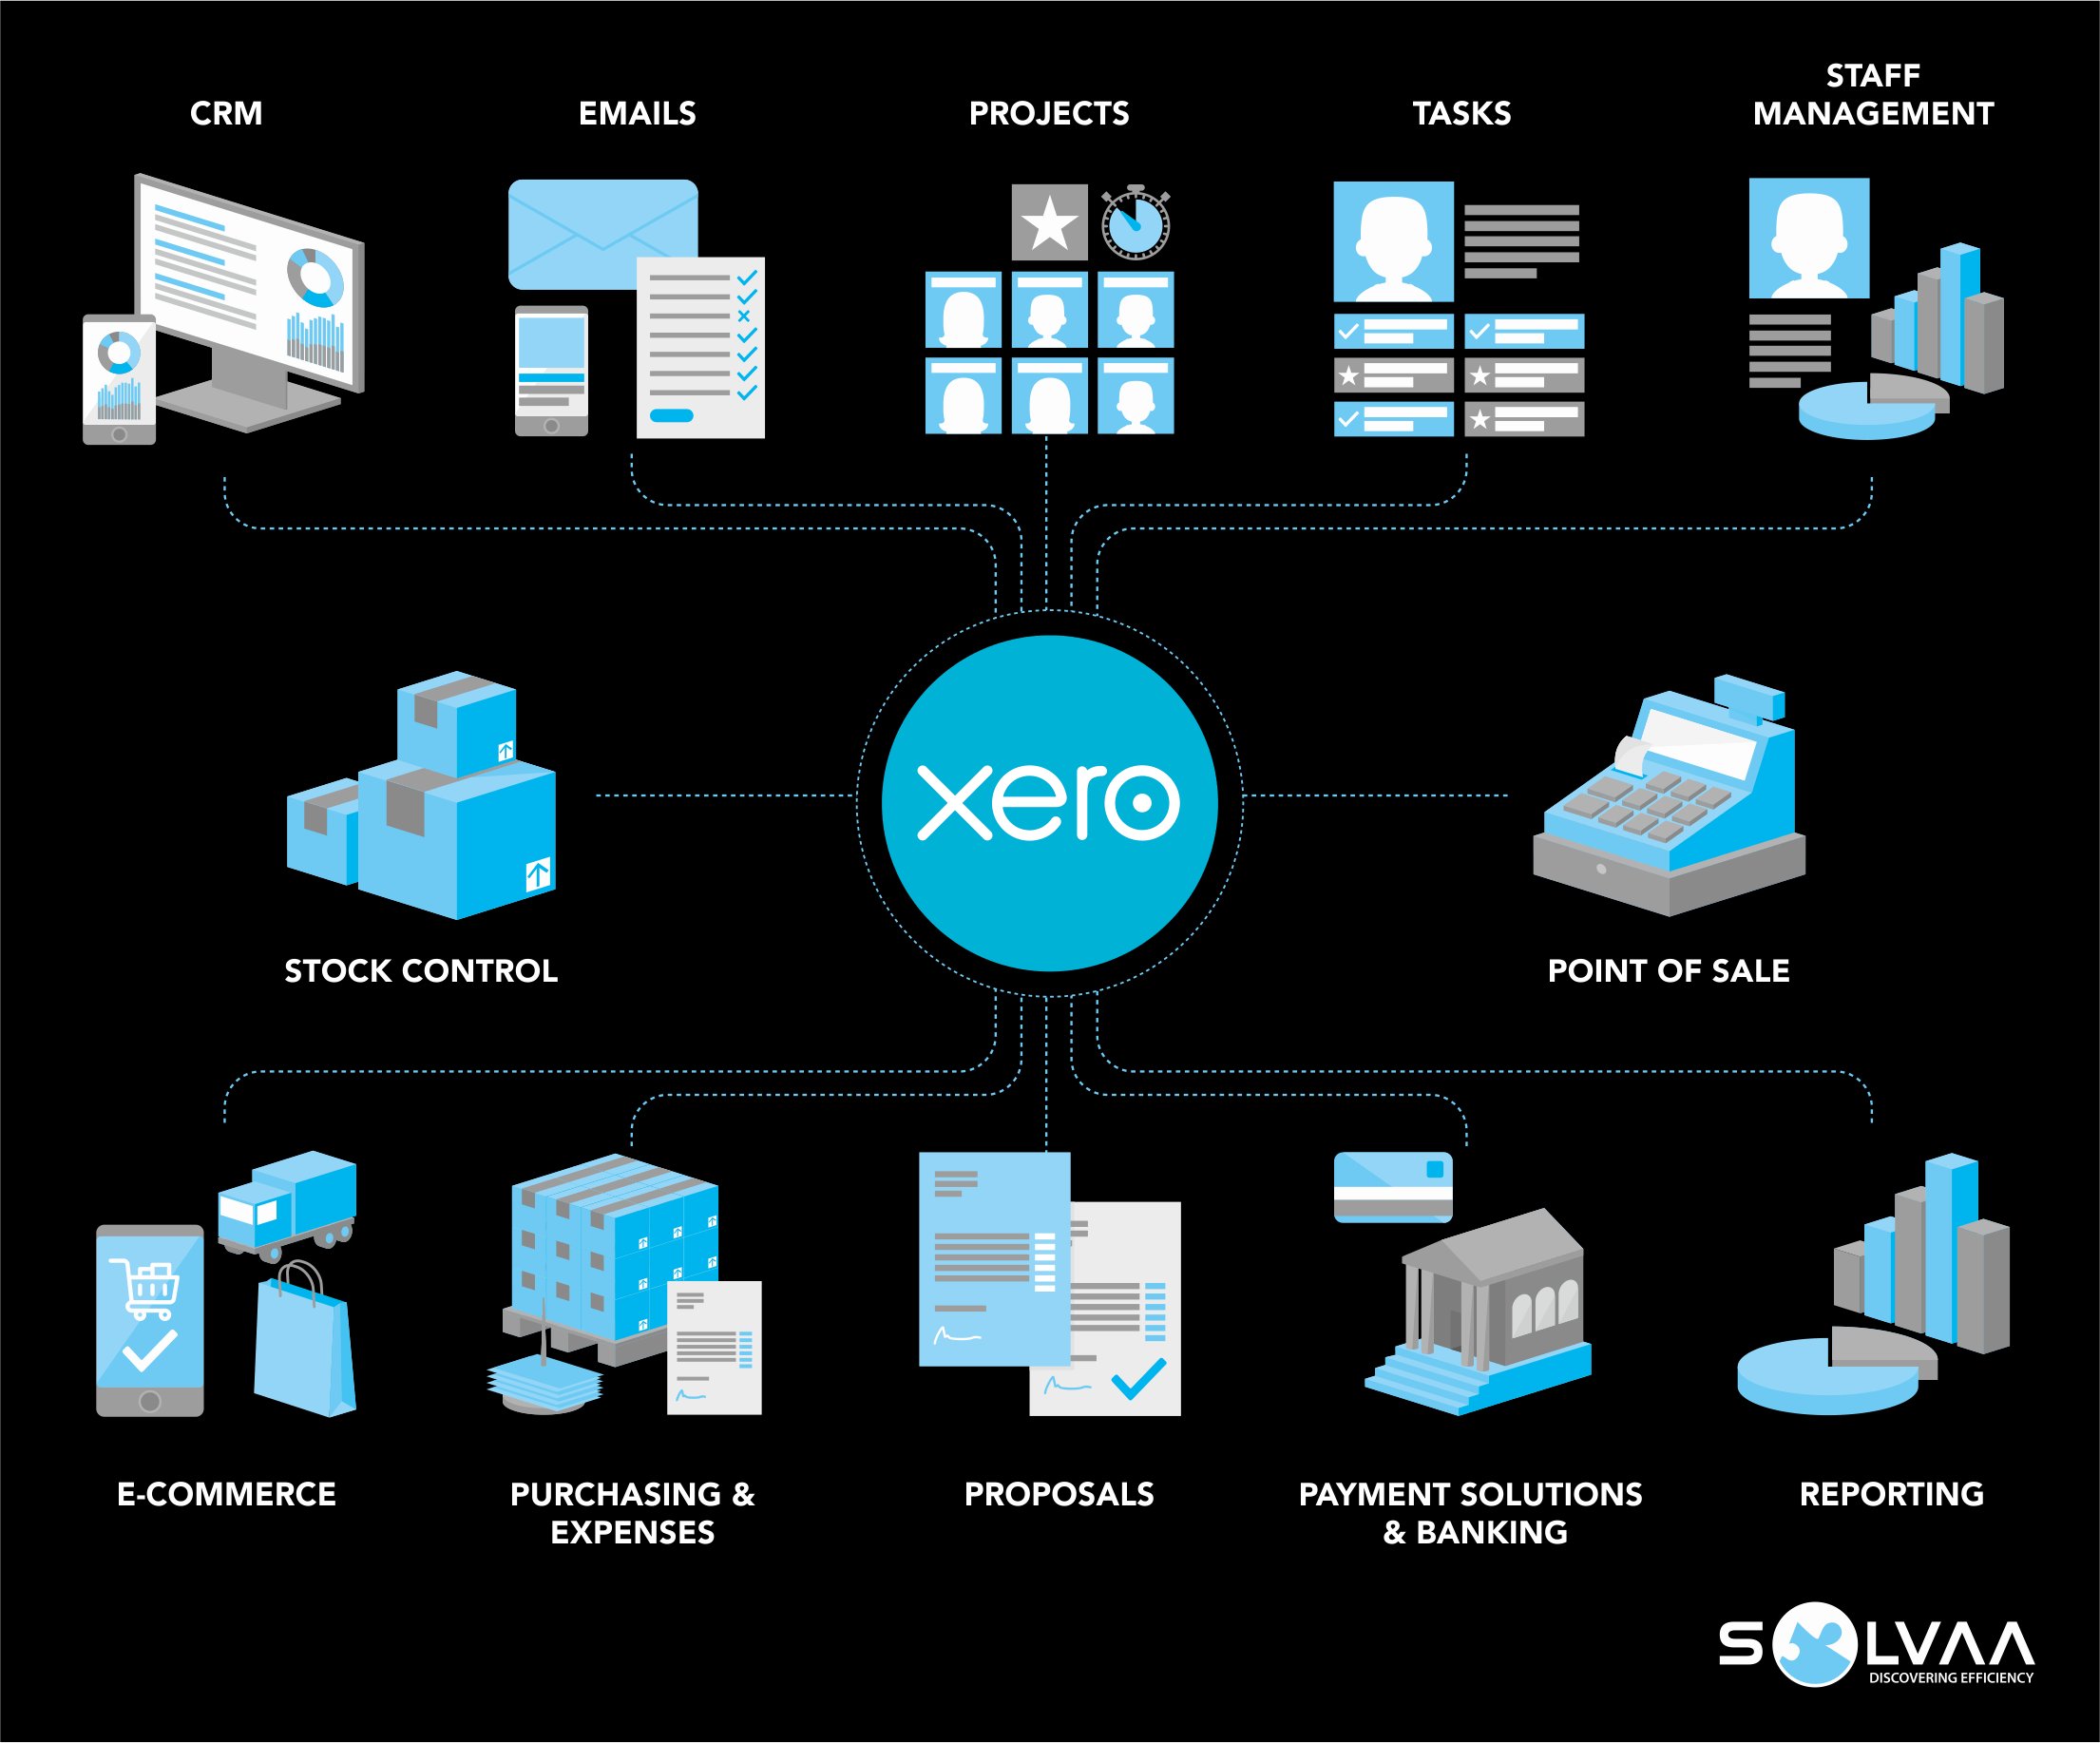 Infographic showing the blue Xero logo at the centre, surrounded by images representing many other connected applications including CRM, projects, tasks, point of sale, e-commerce, payment solutions and reporting.